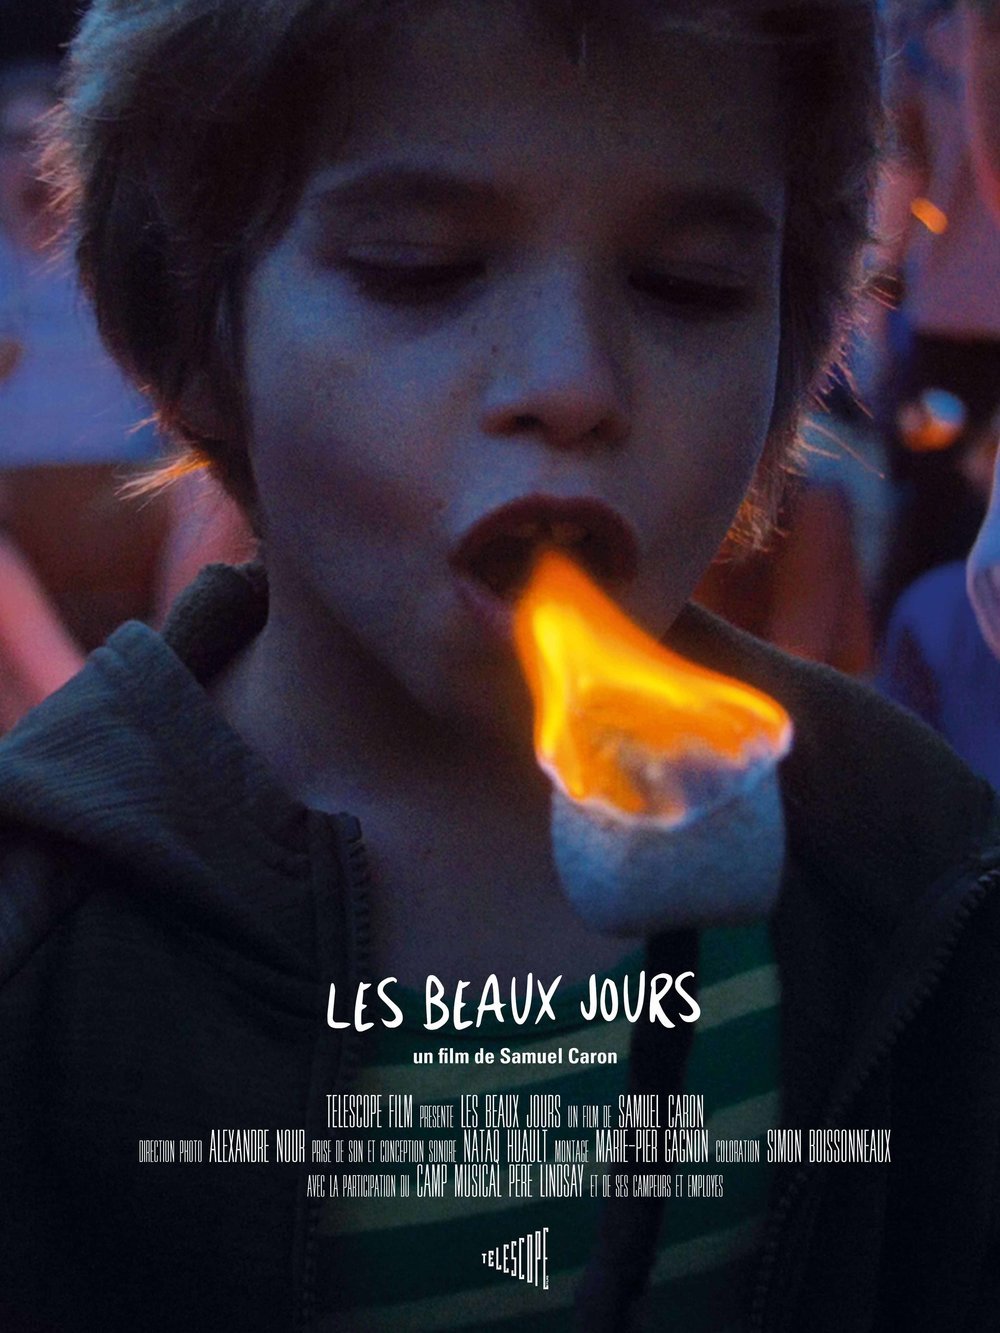 Les Beaux Jours (2017) - Documentary, Musical Synopsis Through the banal adventures and musical performances of the children in a musical camp in Lanaudière, Quebec, this series of contemplative frescoes offers a nostalgic view of a childhood bathed in sunlight and nature. Director : Samuel CaronProducteur : Samuel CaronCinematographer : Alexandre NourEditor :  Marie-pier GrignonSound Designer : Nataq Hualt